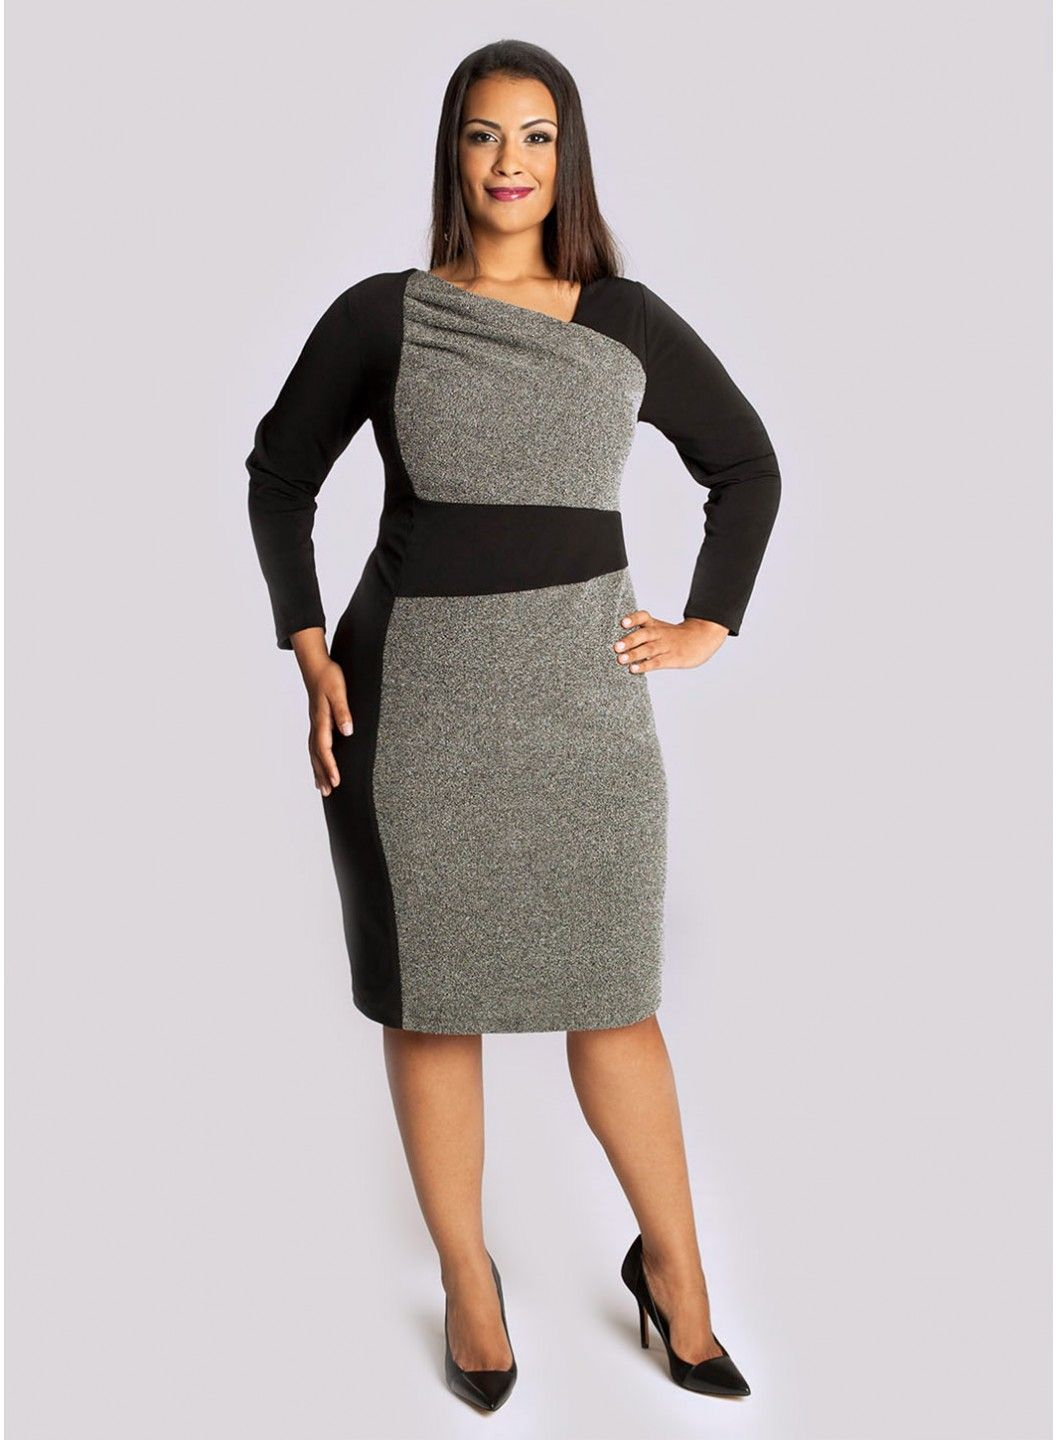 Plus size business wear | Plus size outfit ideas | Fashion, Dresses ...